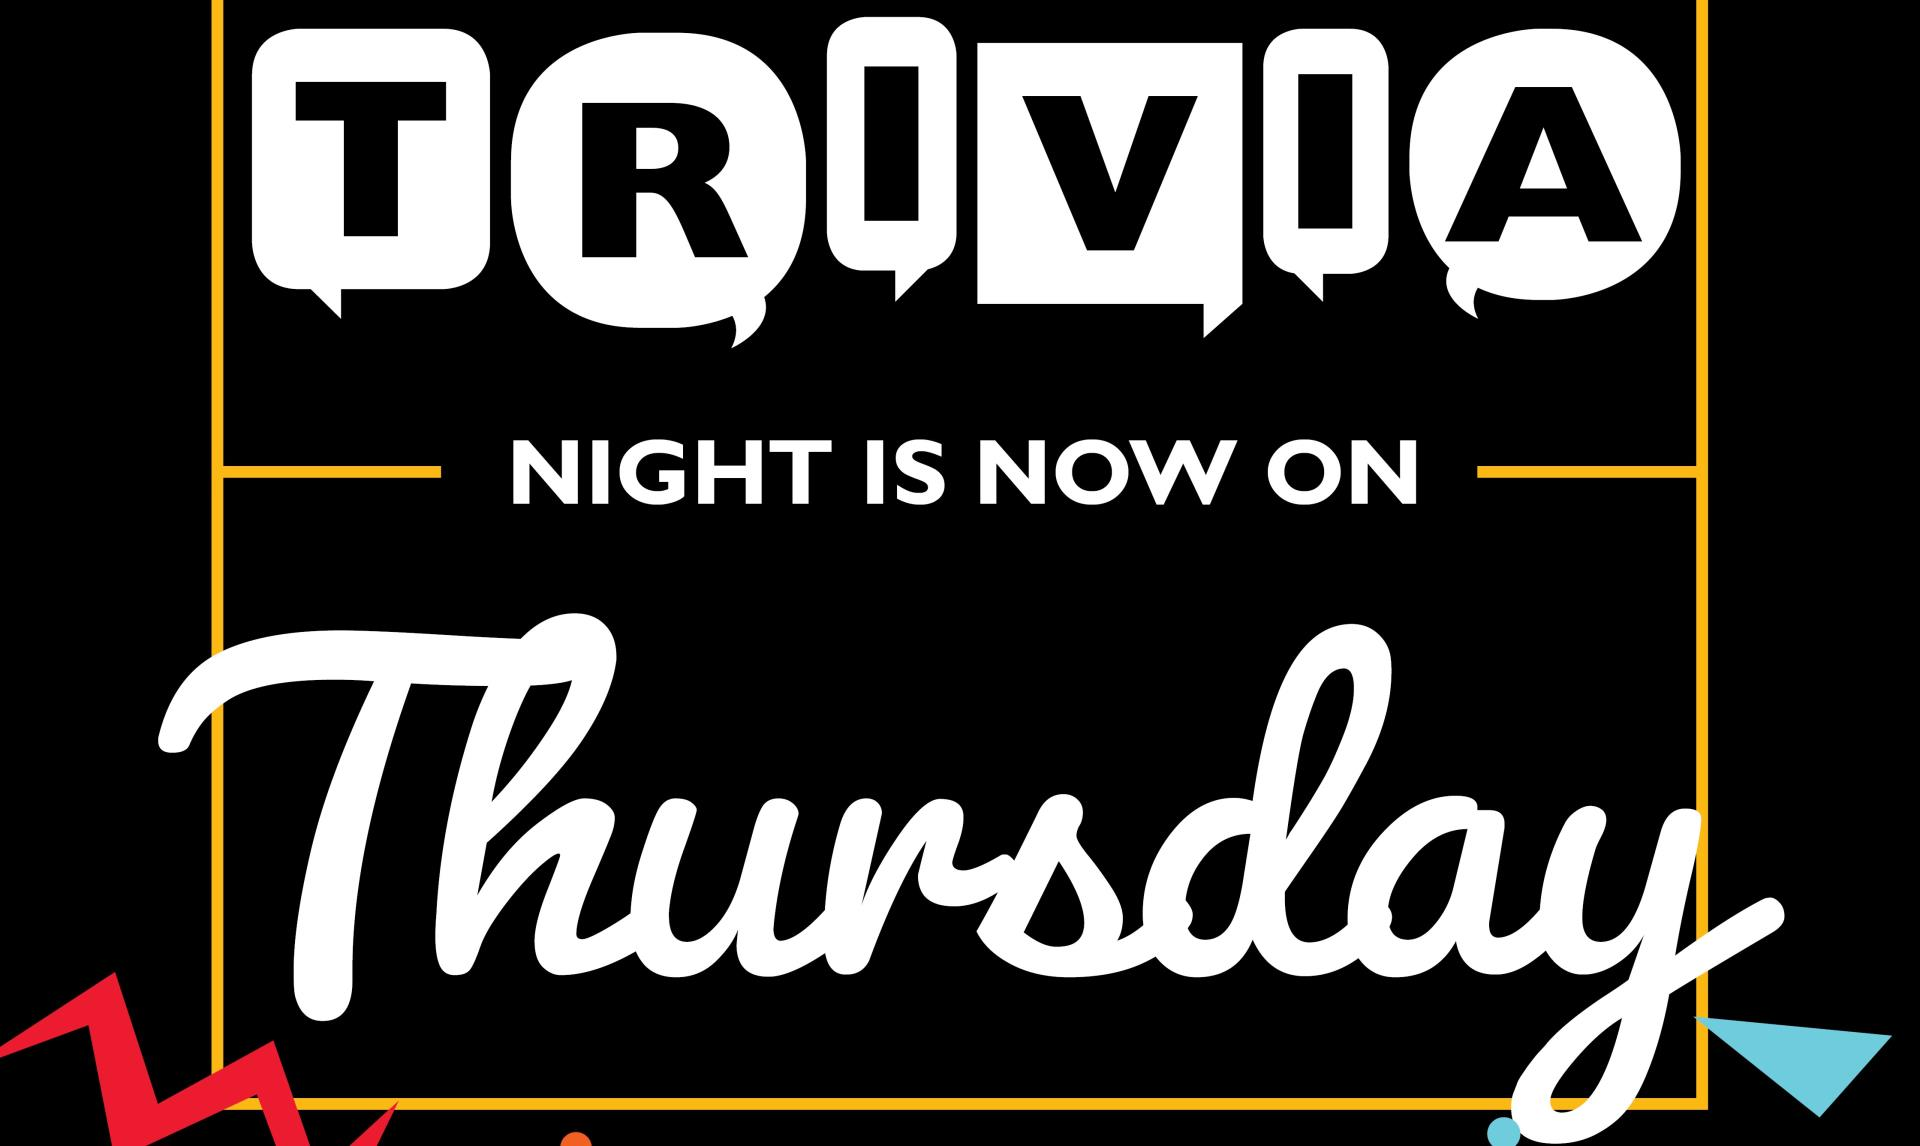 Trivia is changing to Thursdays!